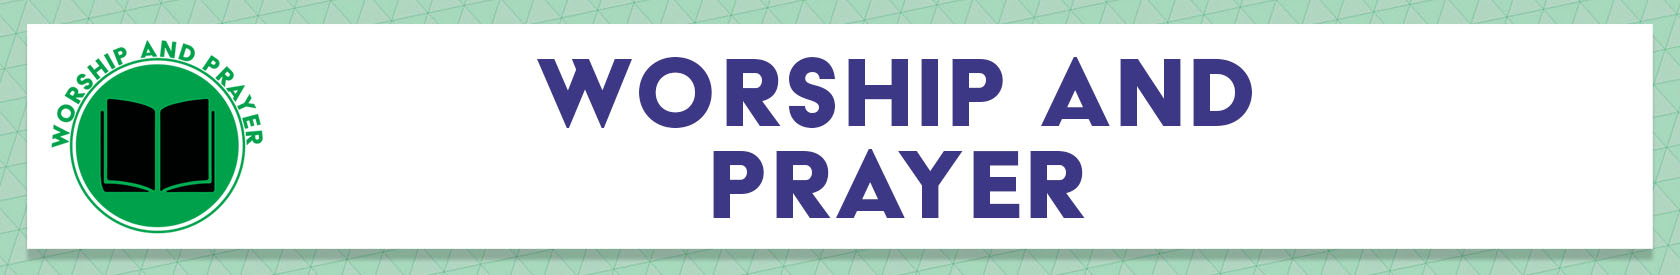 Resources: Worship, Prayer and Liturgy